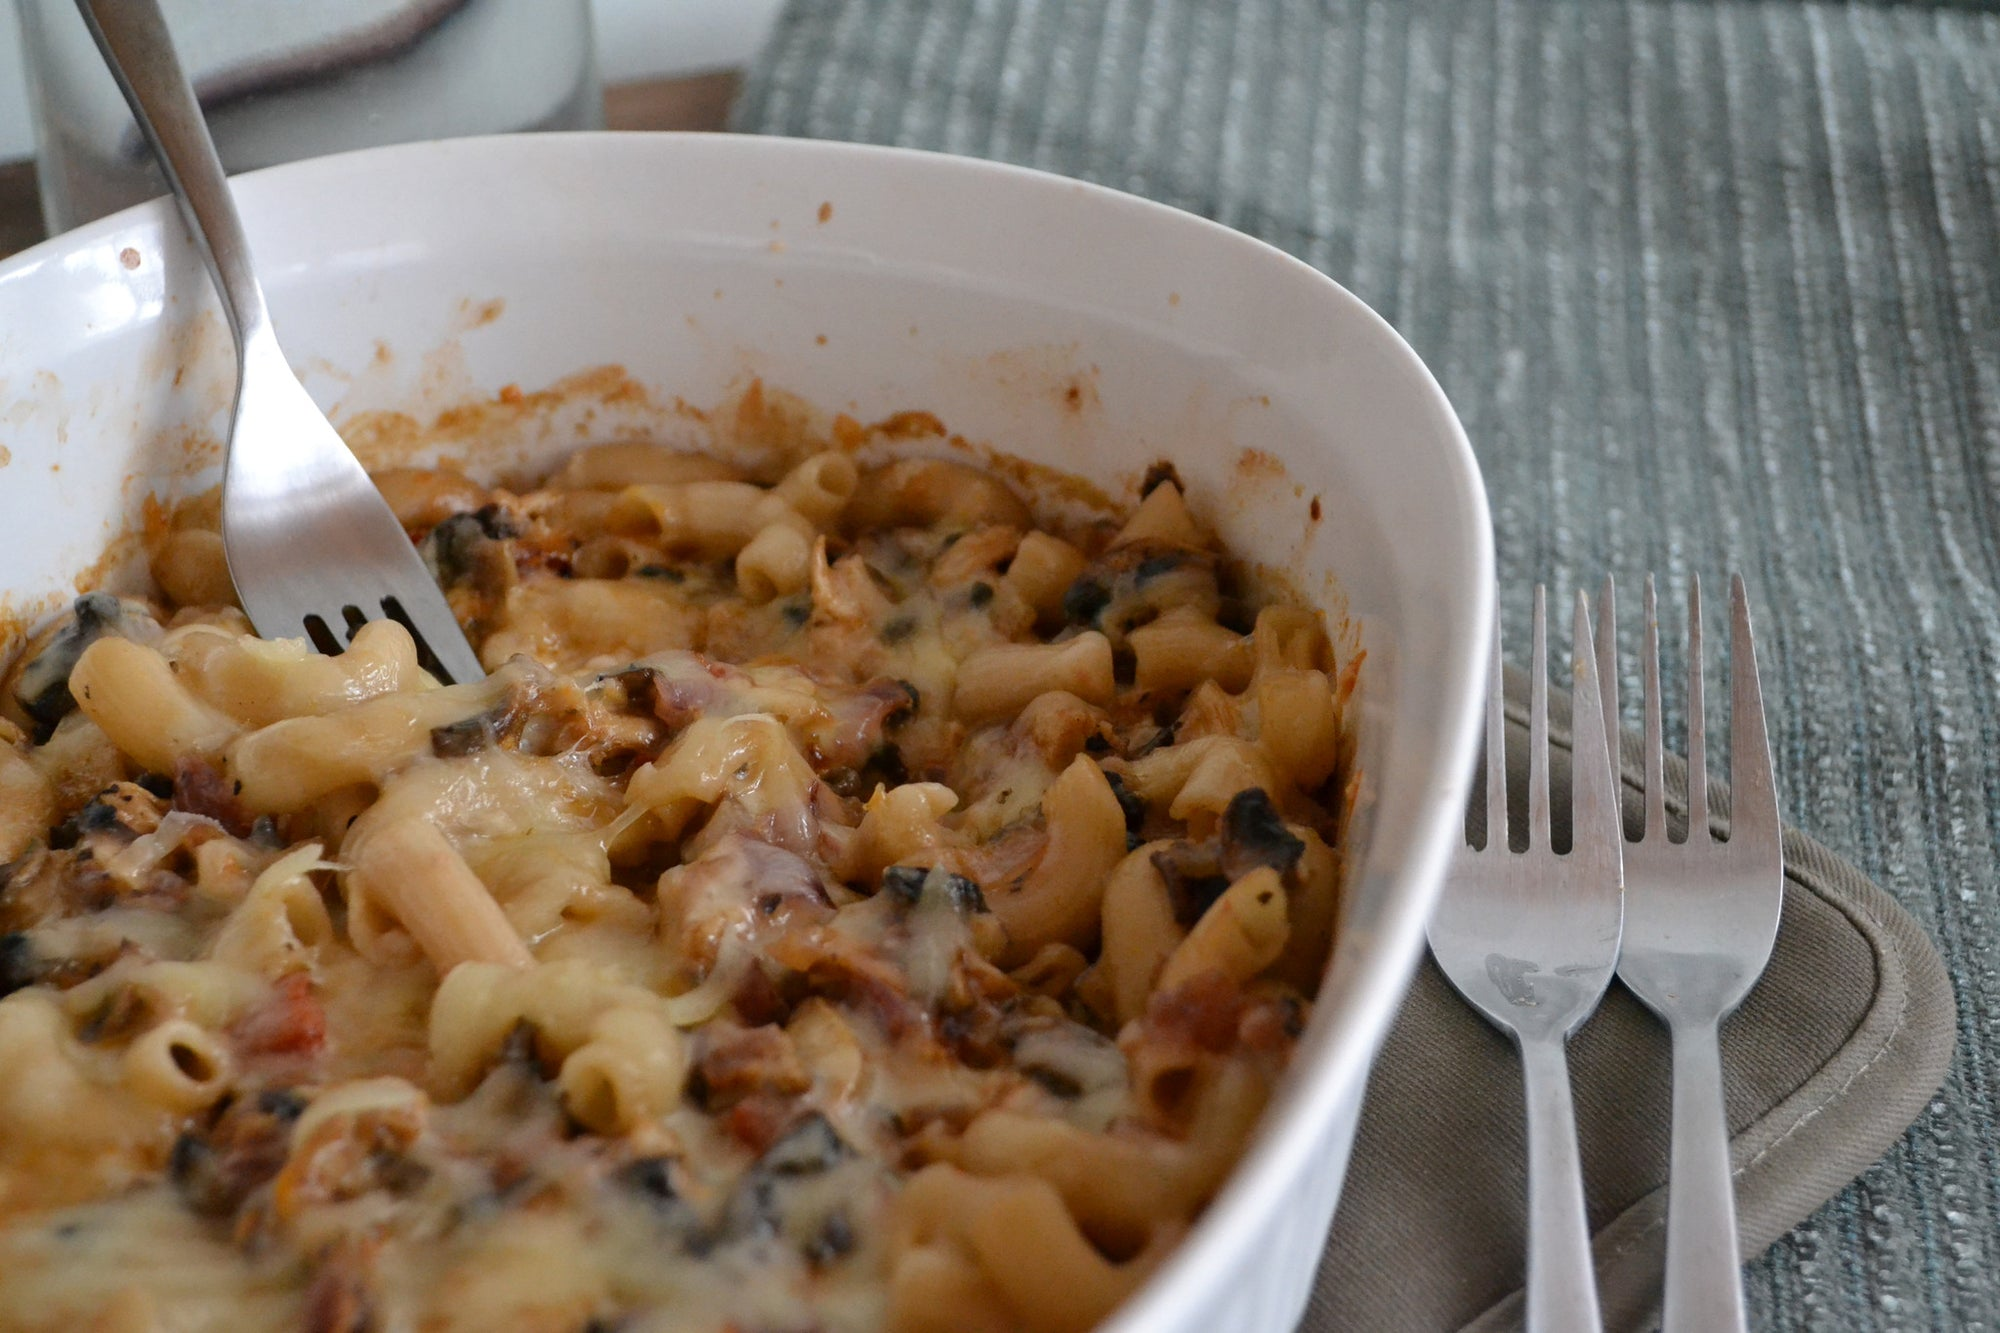 Gluten-Free Mac & Cheese & Chicken Casserole